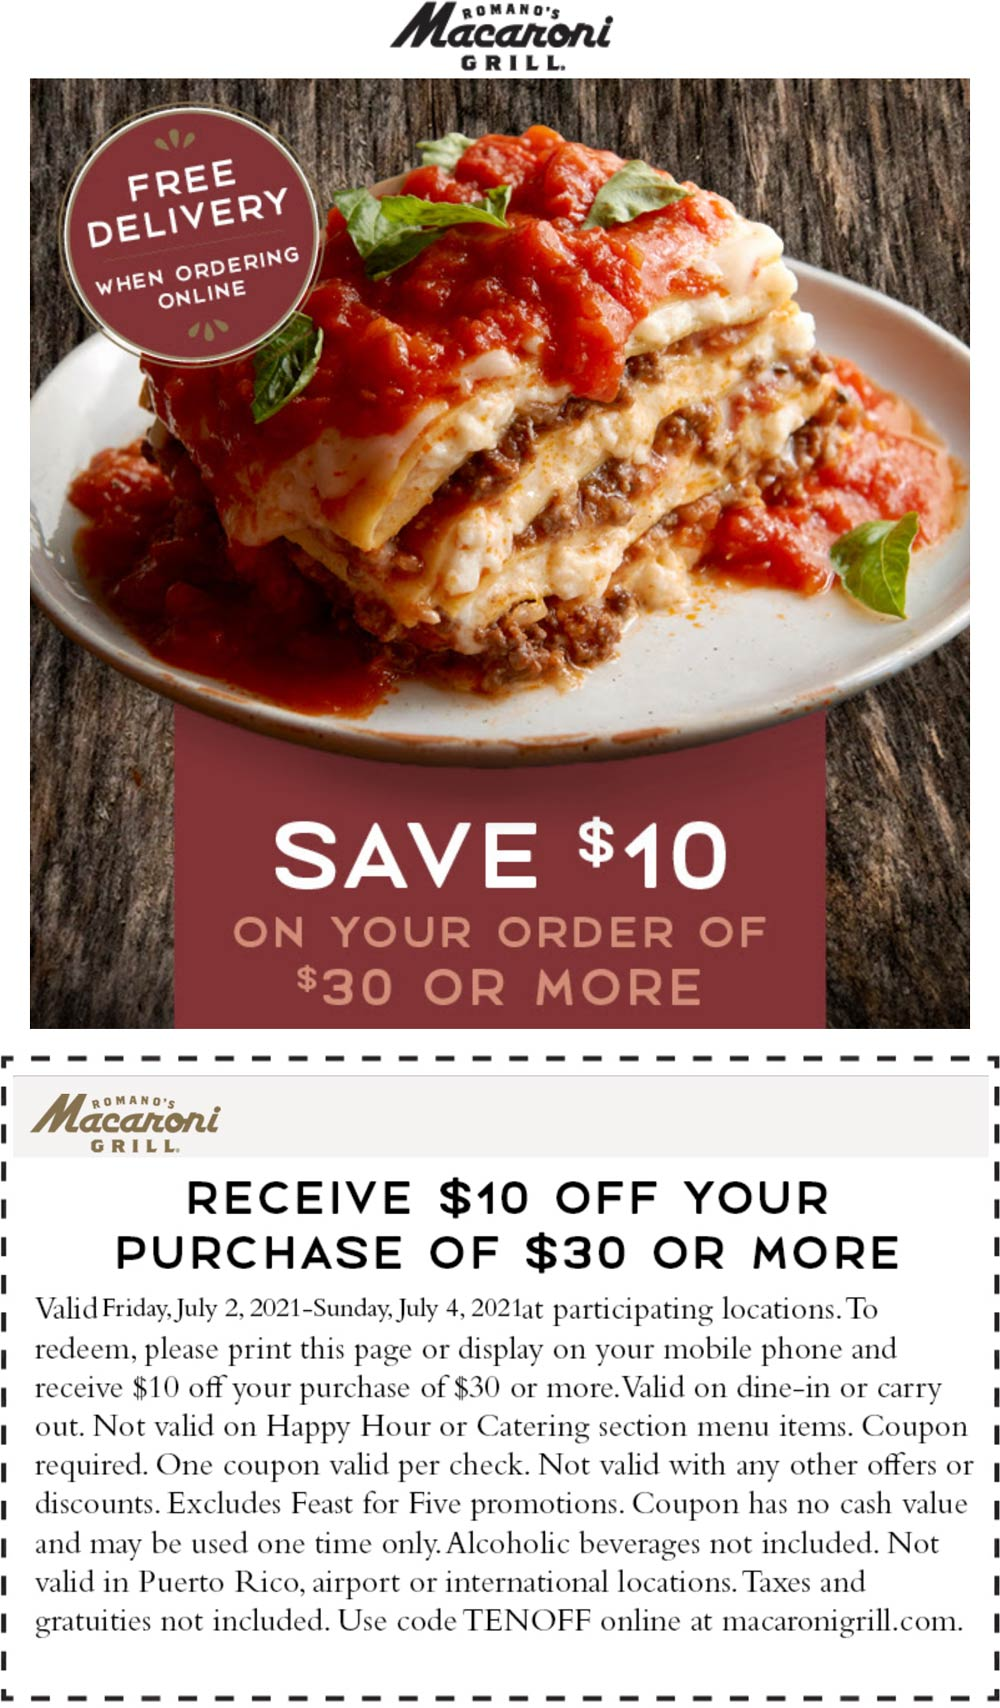 Macaroni Grill restaurants Coupon  $10 off $30 at Macaroni Grill restaurants, or online via promo code TENOFF #macaronigrill